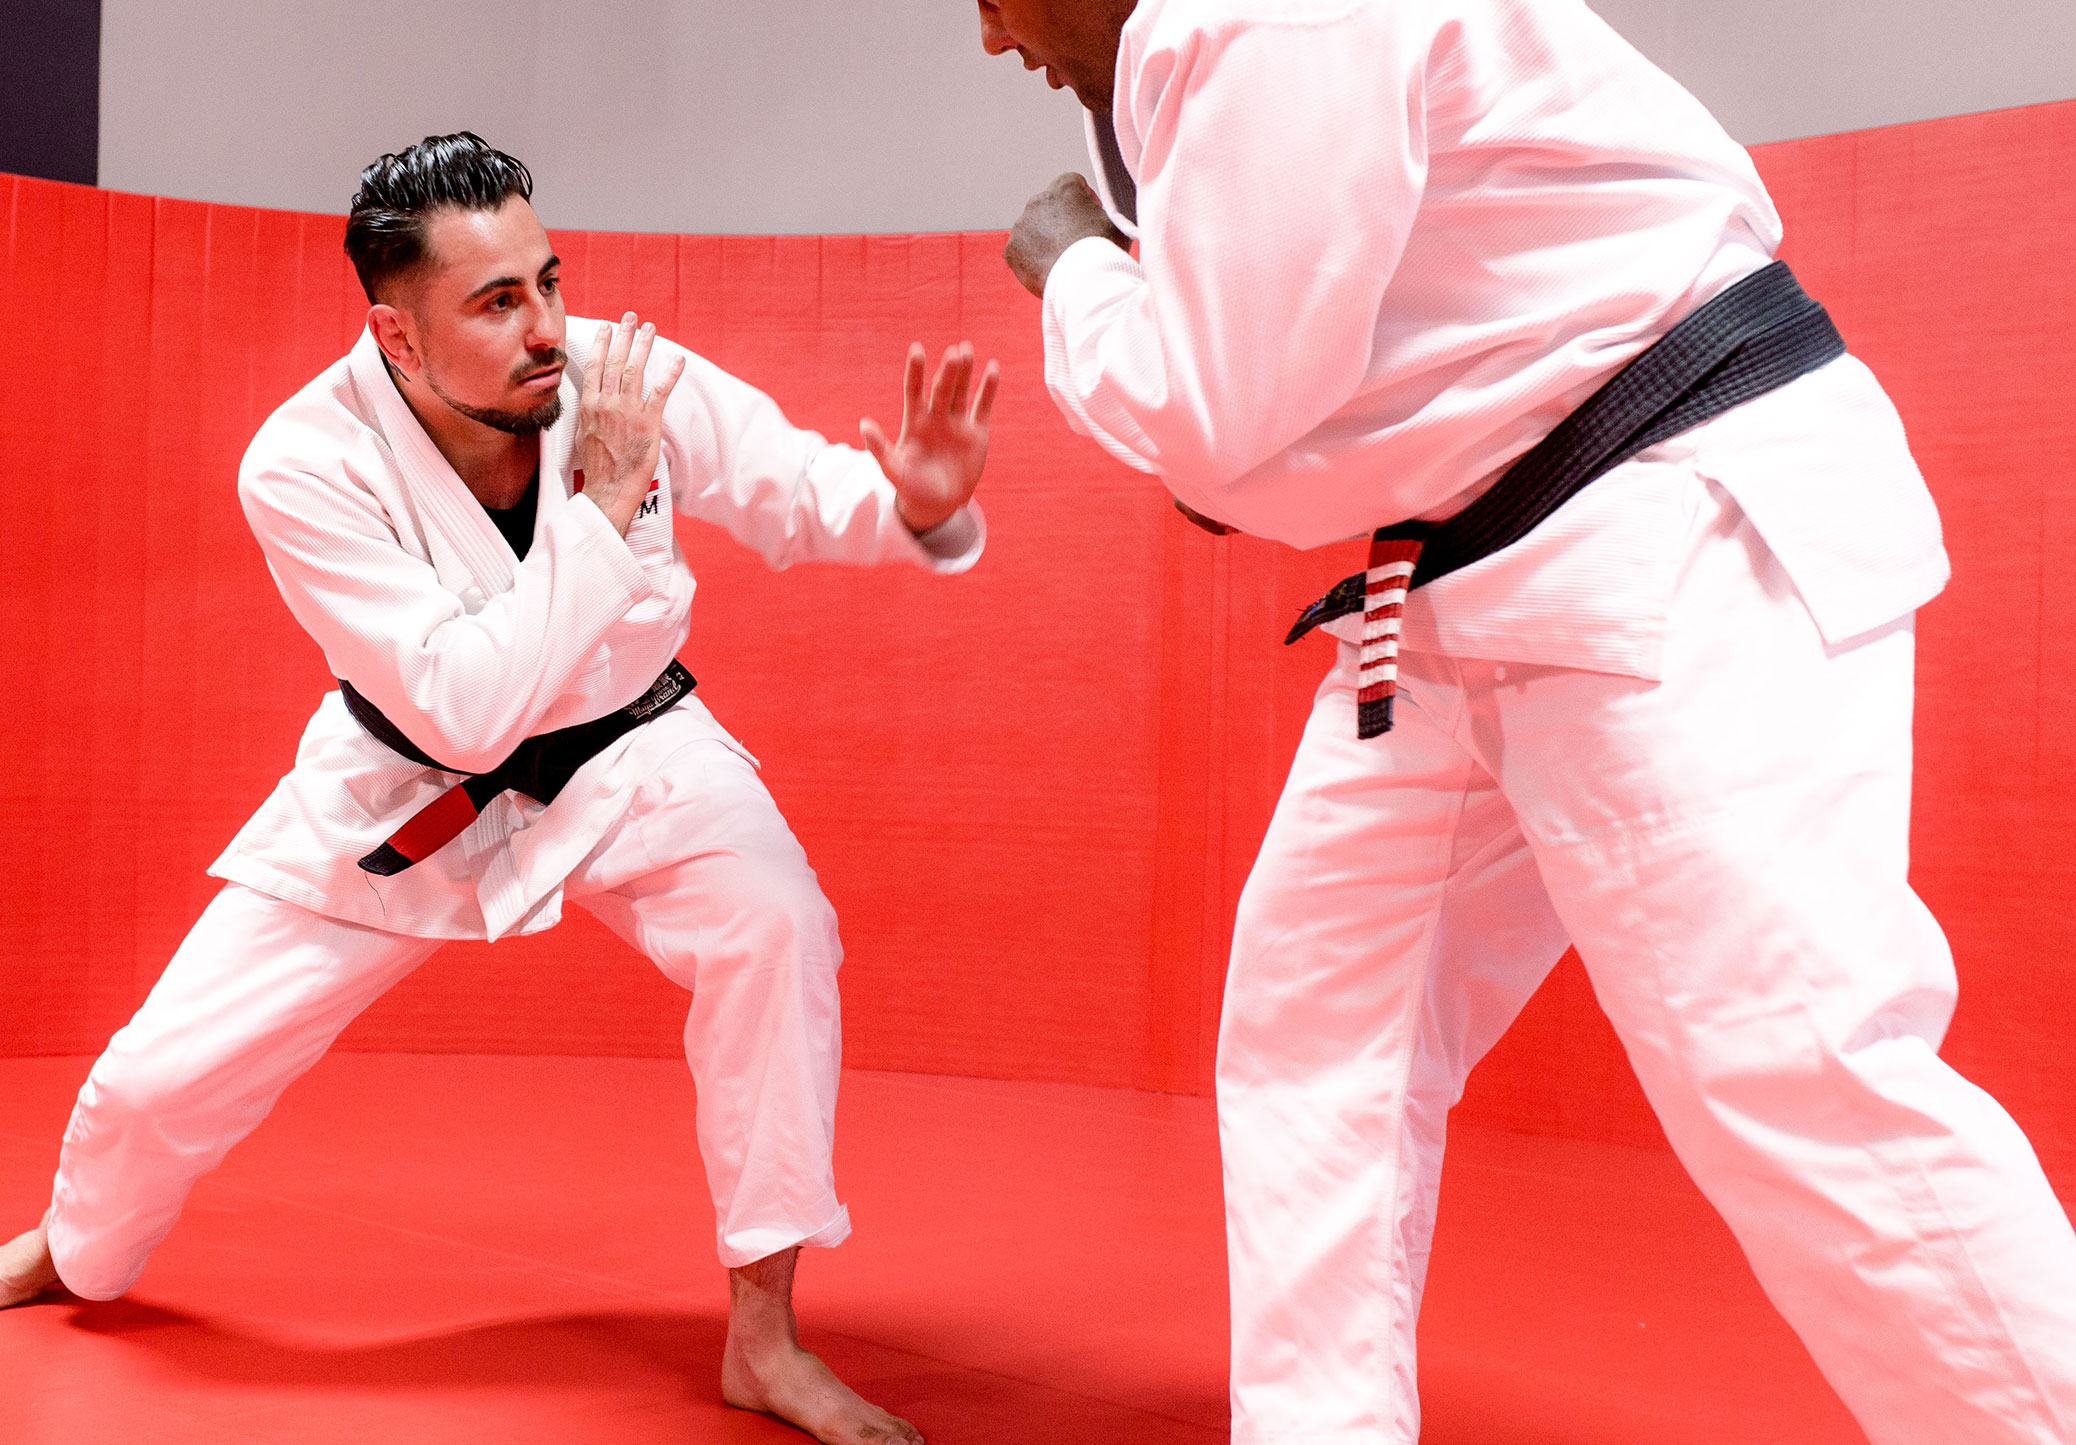 Members in a brazilian jiu-jitsu match